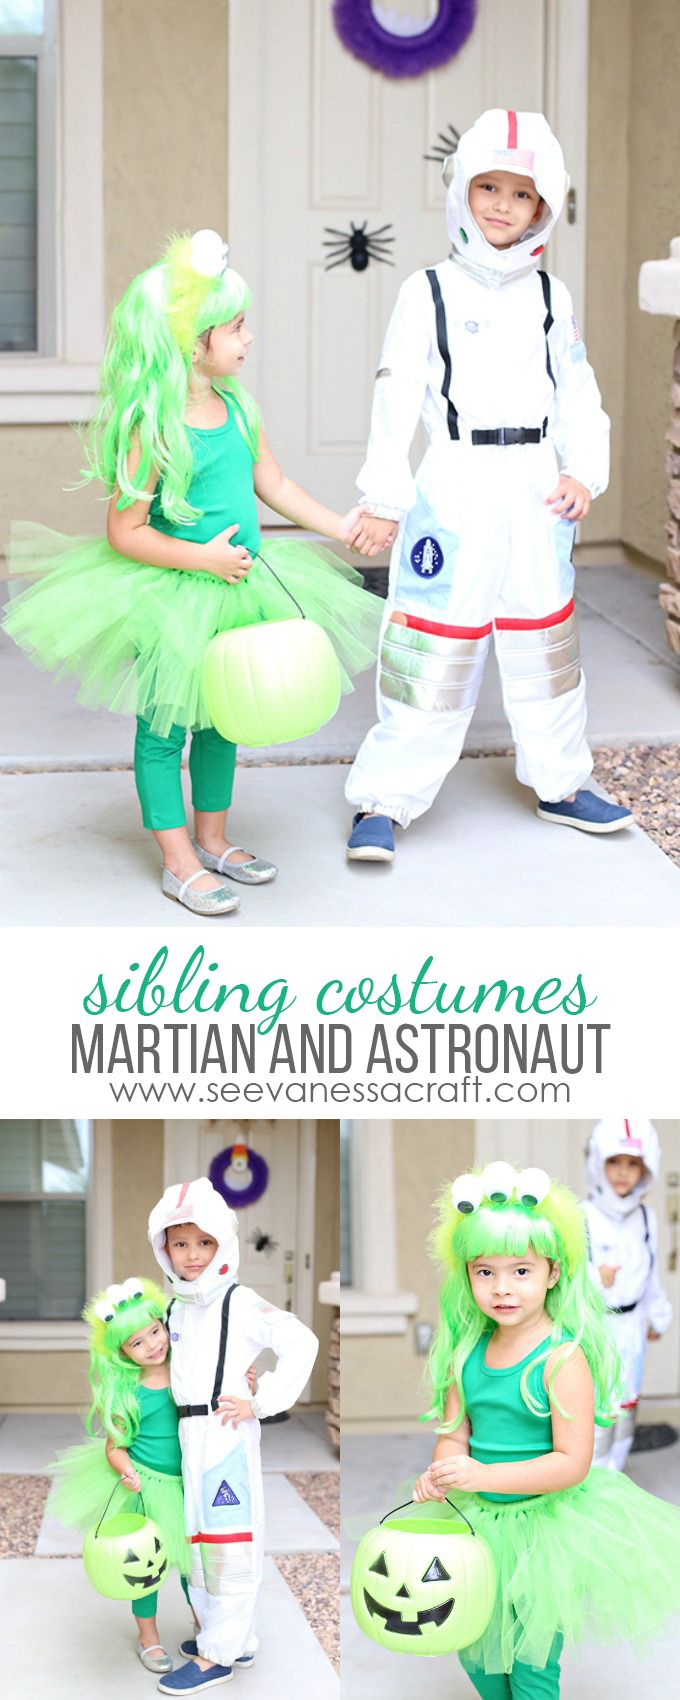 Halloween: Martian and Astronaut Sibling Costumes ...